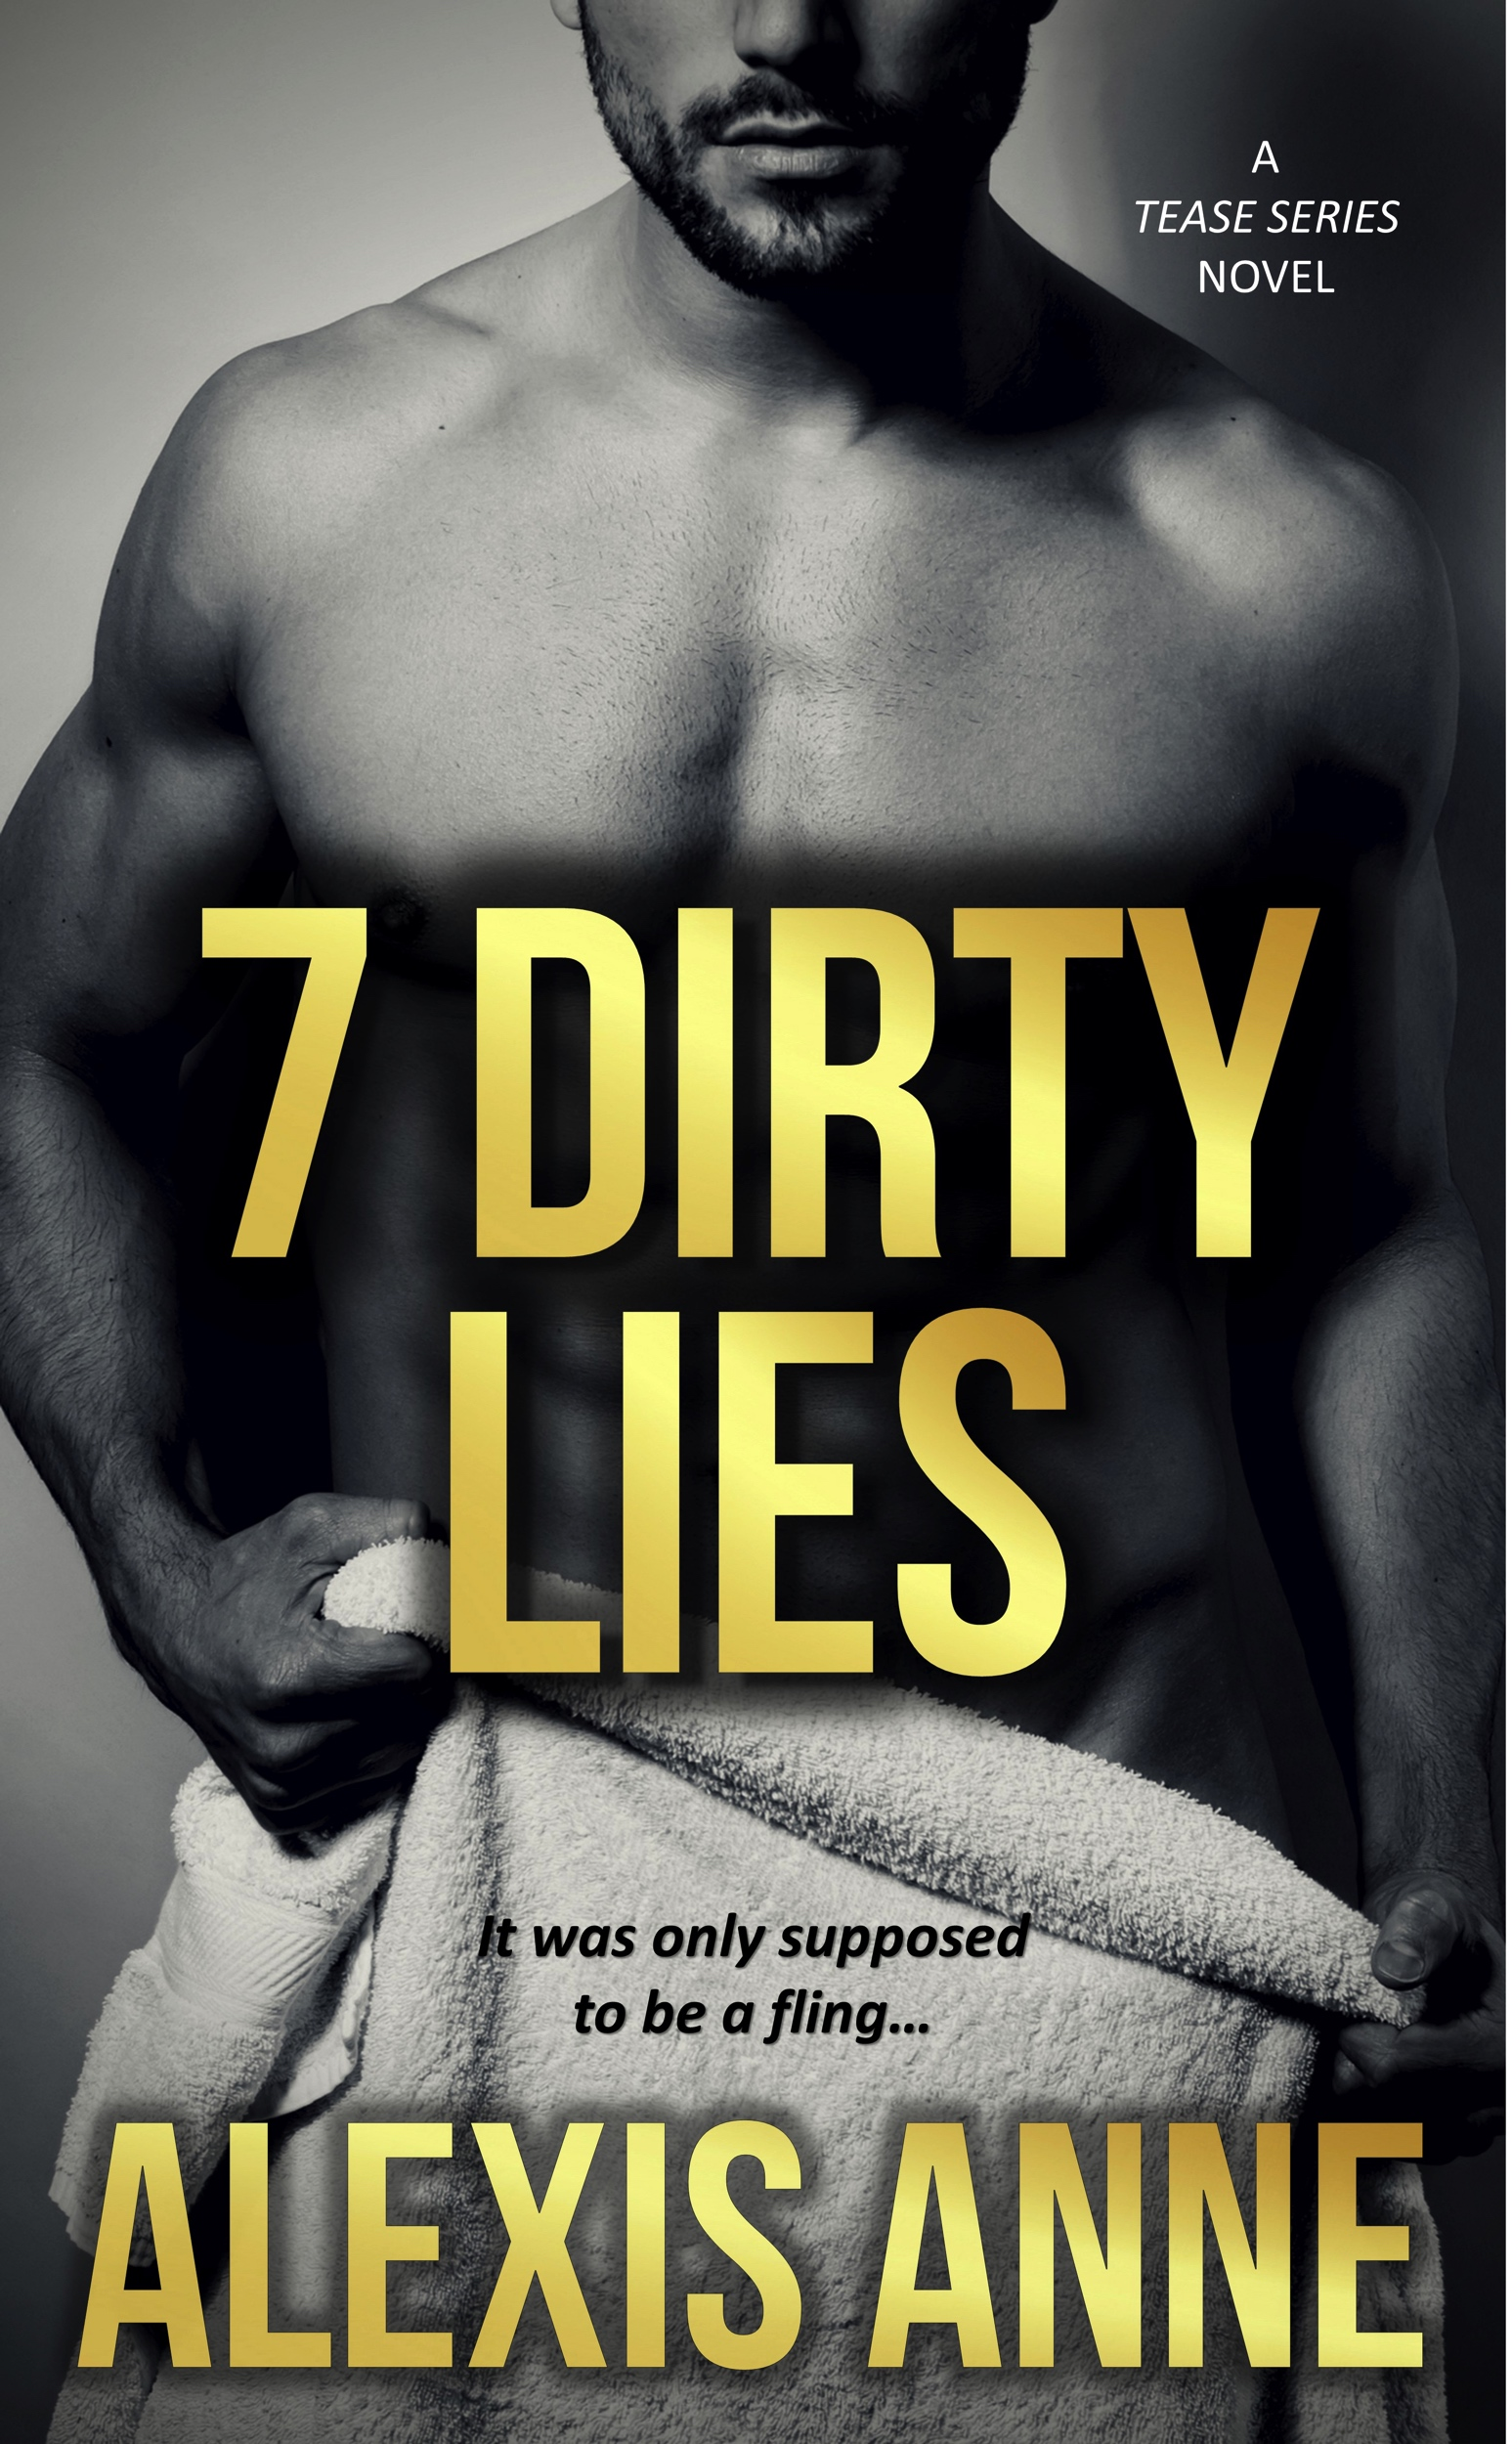 My-Book-7-Dirty-Lies-Kindle.jpg